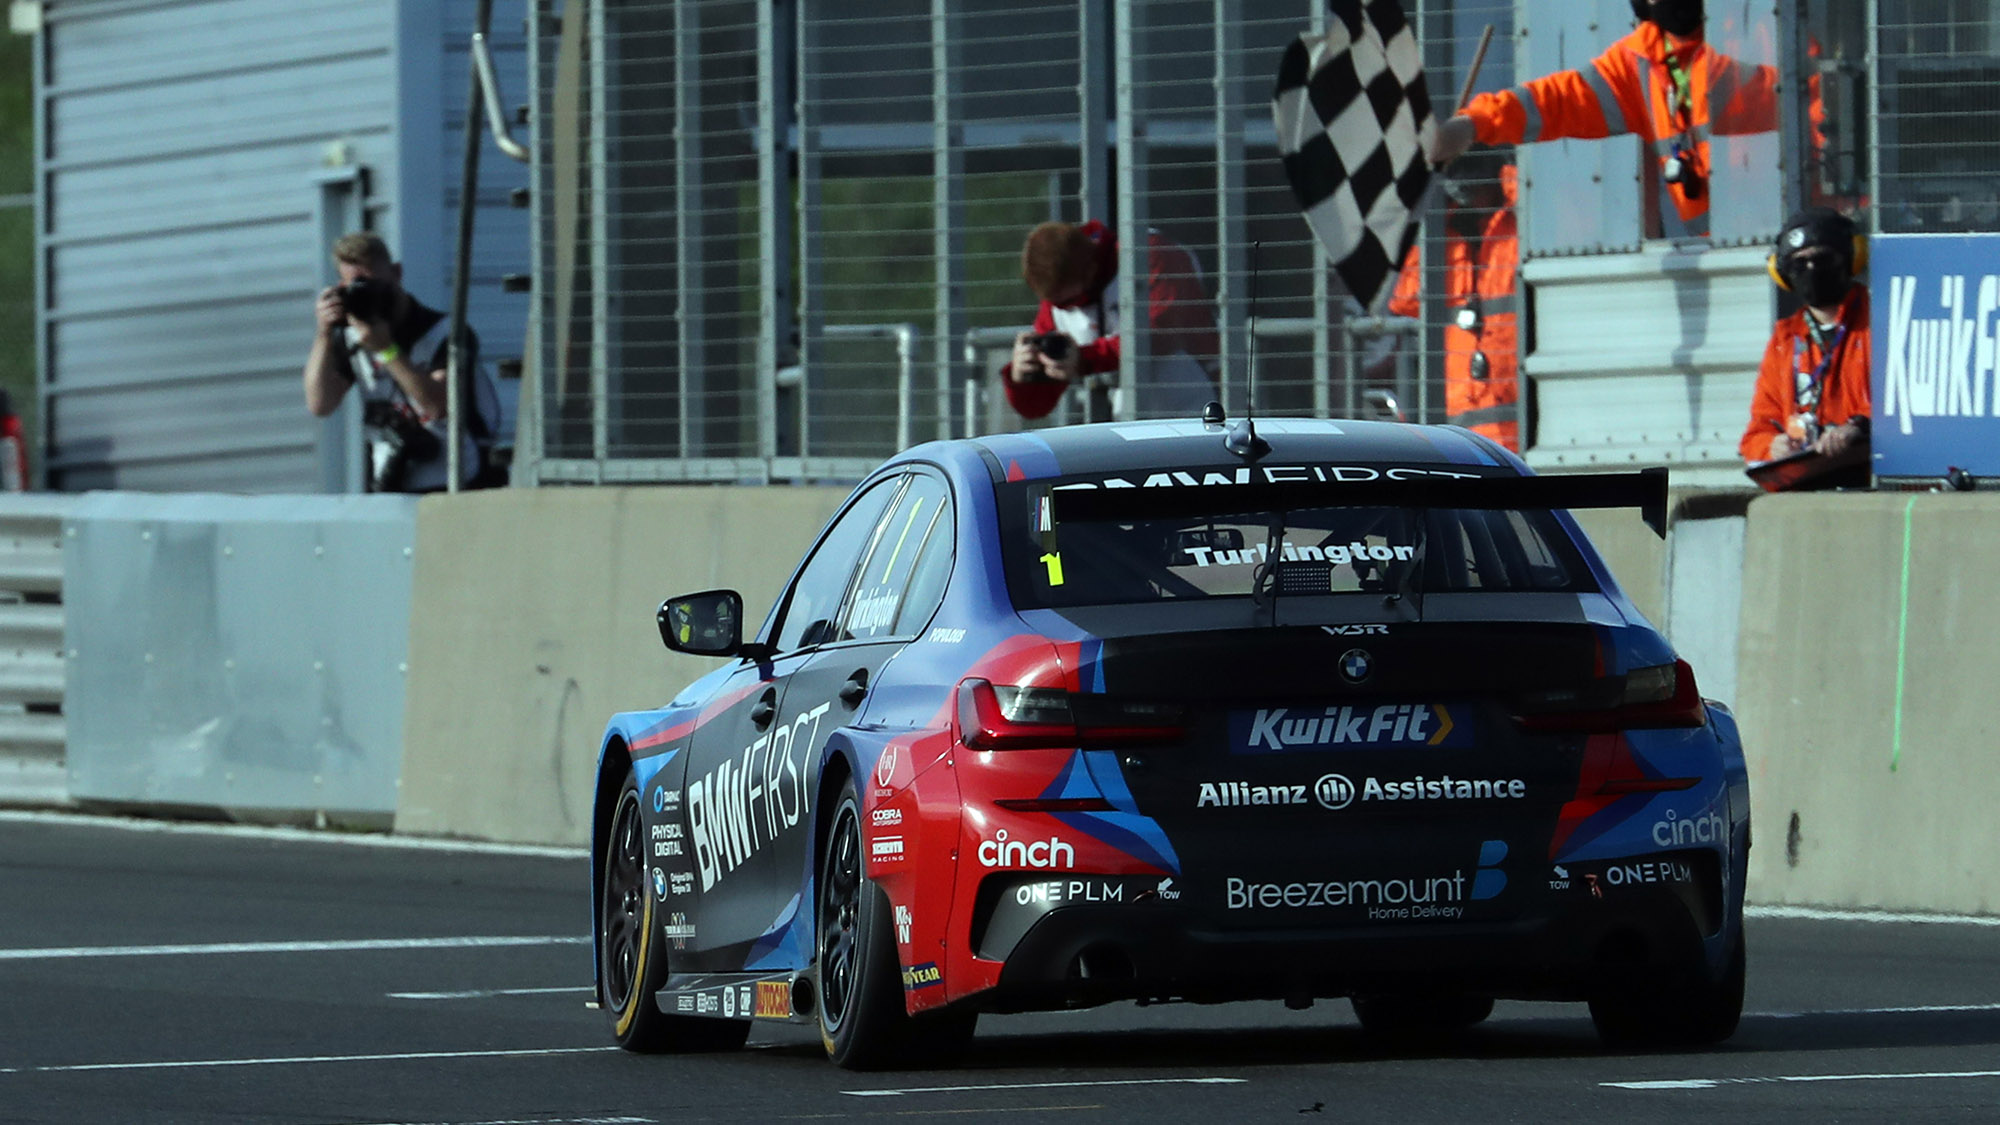 Colin Turkington crosses the line to win at Snetterton in the 2020 BTCC round